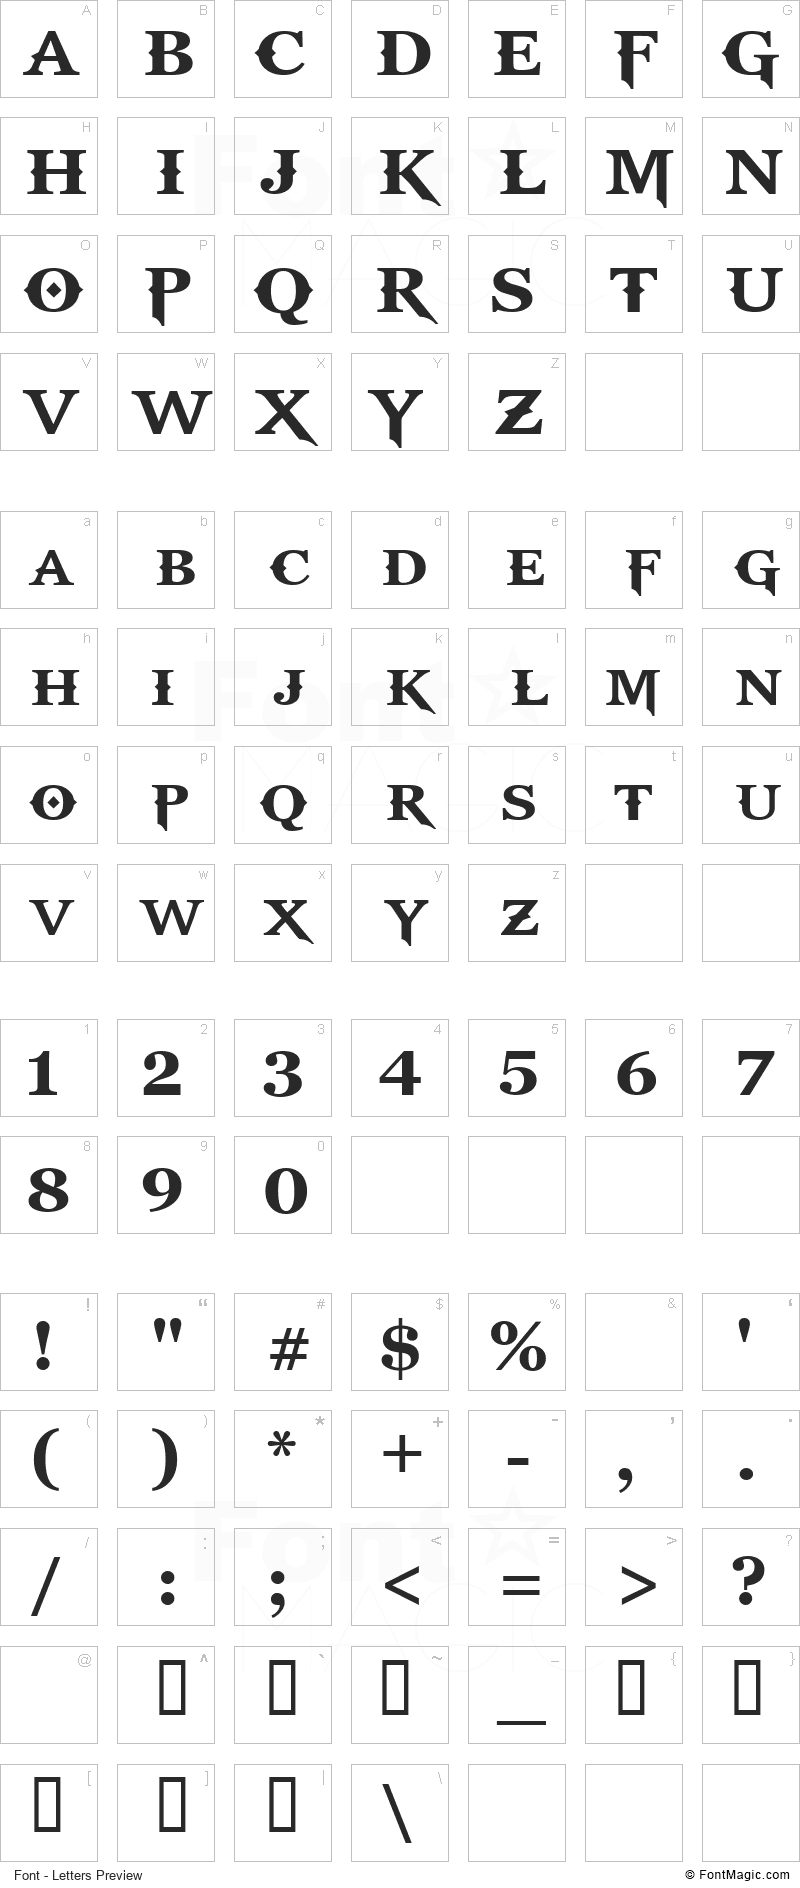 God Of War Font - All Latters Preview Chart